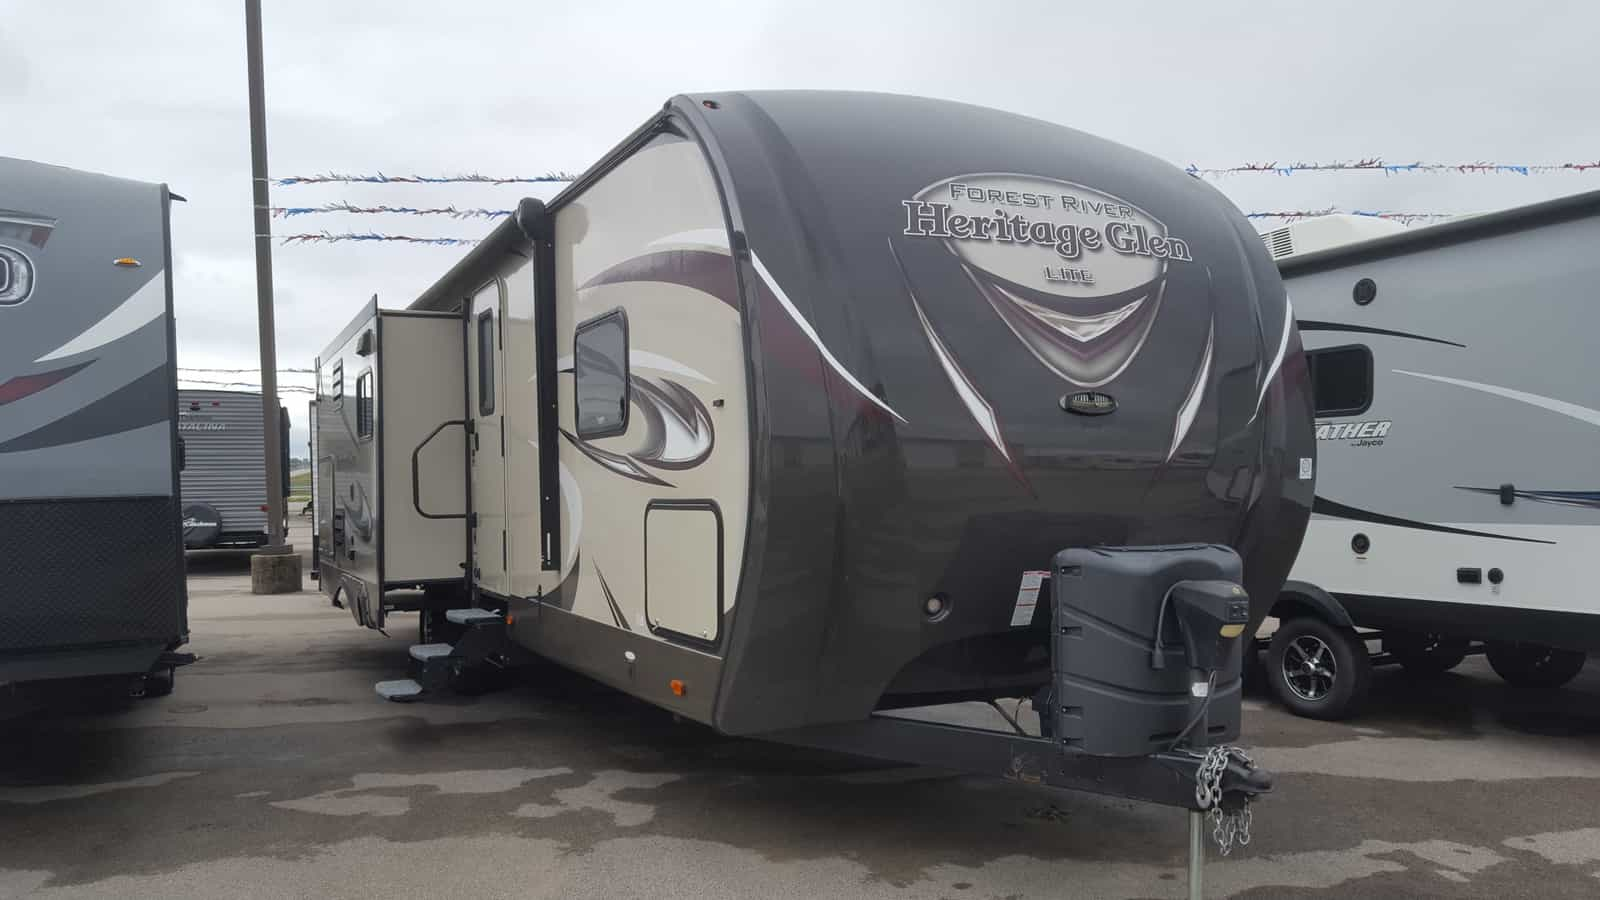 USED 2015 Forest River HERITAGE GLEN 272RLIS - American RV